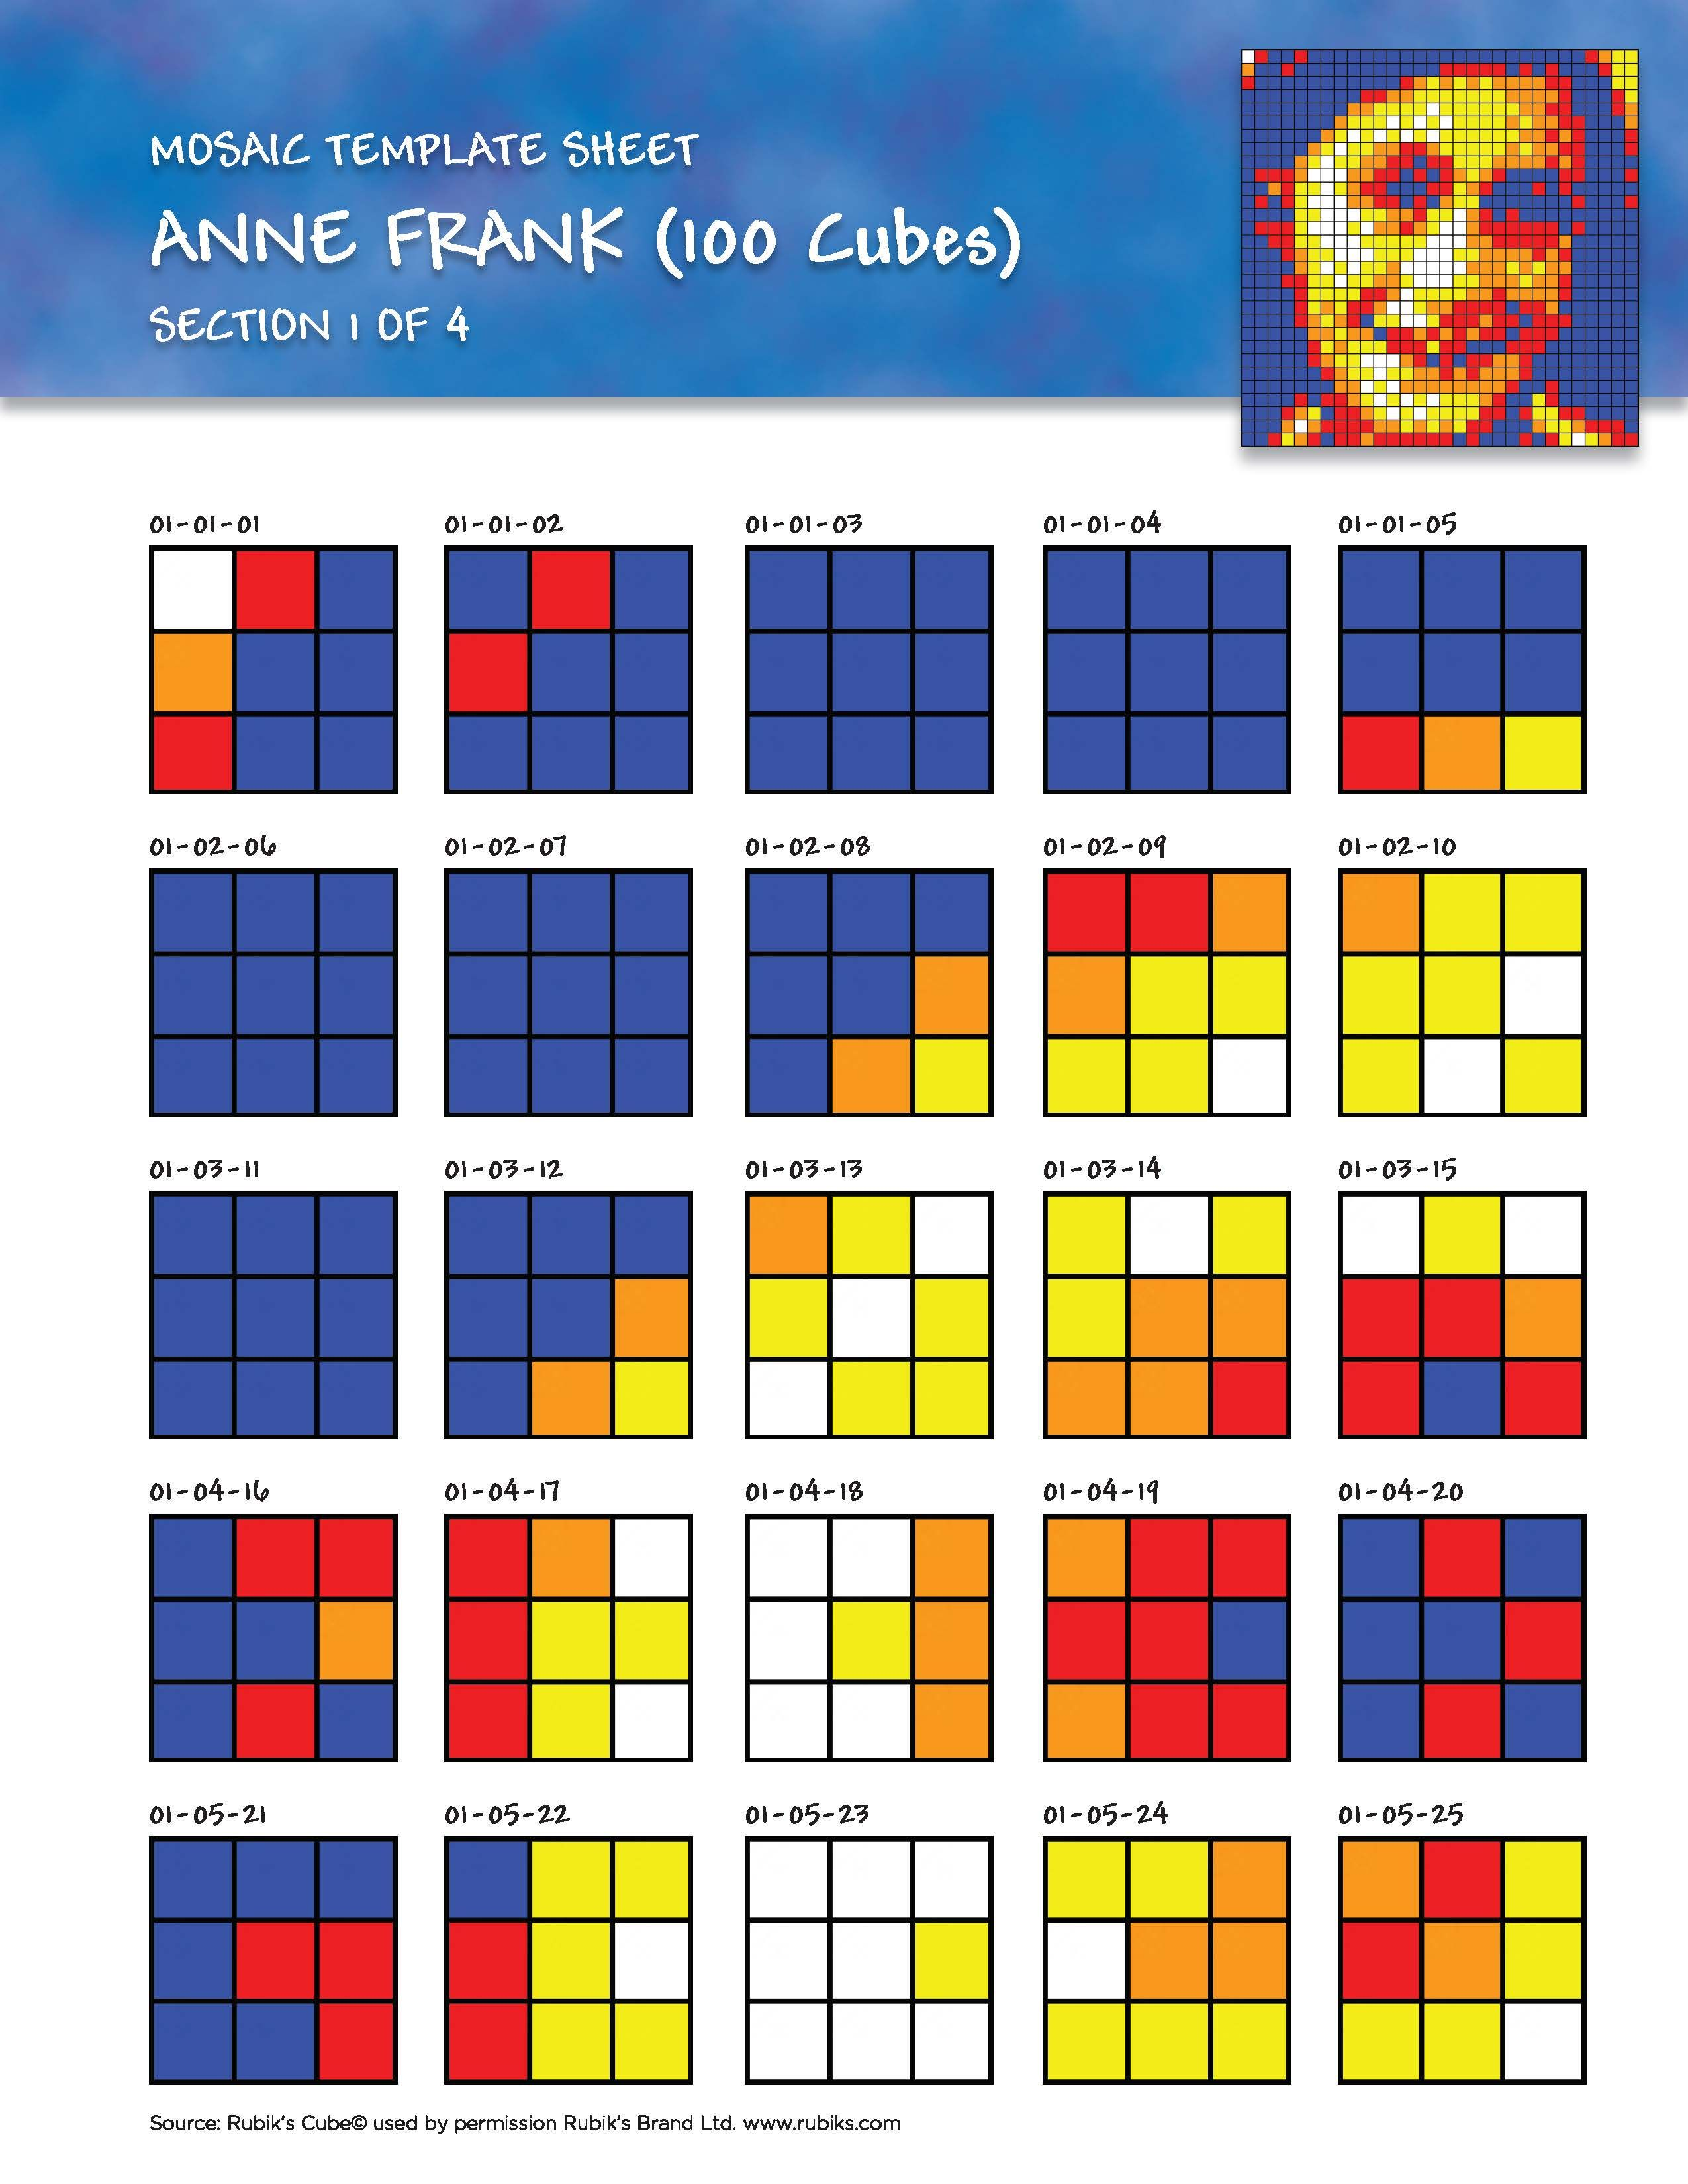 Students build a mosaic one 25-cube section at a time by arranging each cube to match the template.